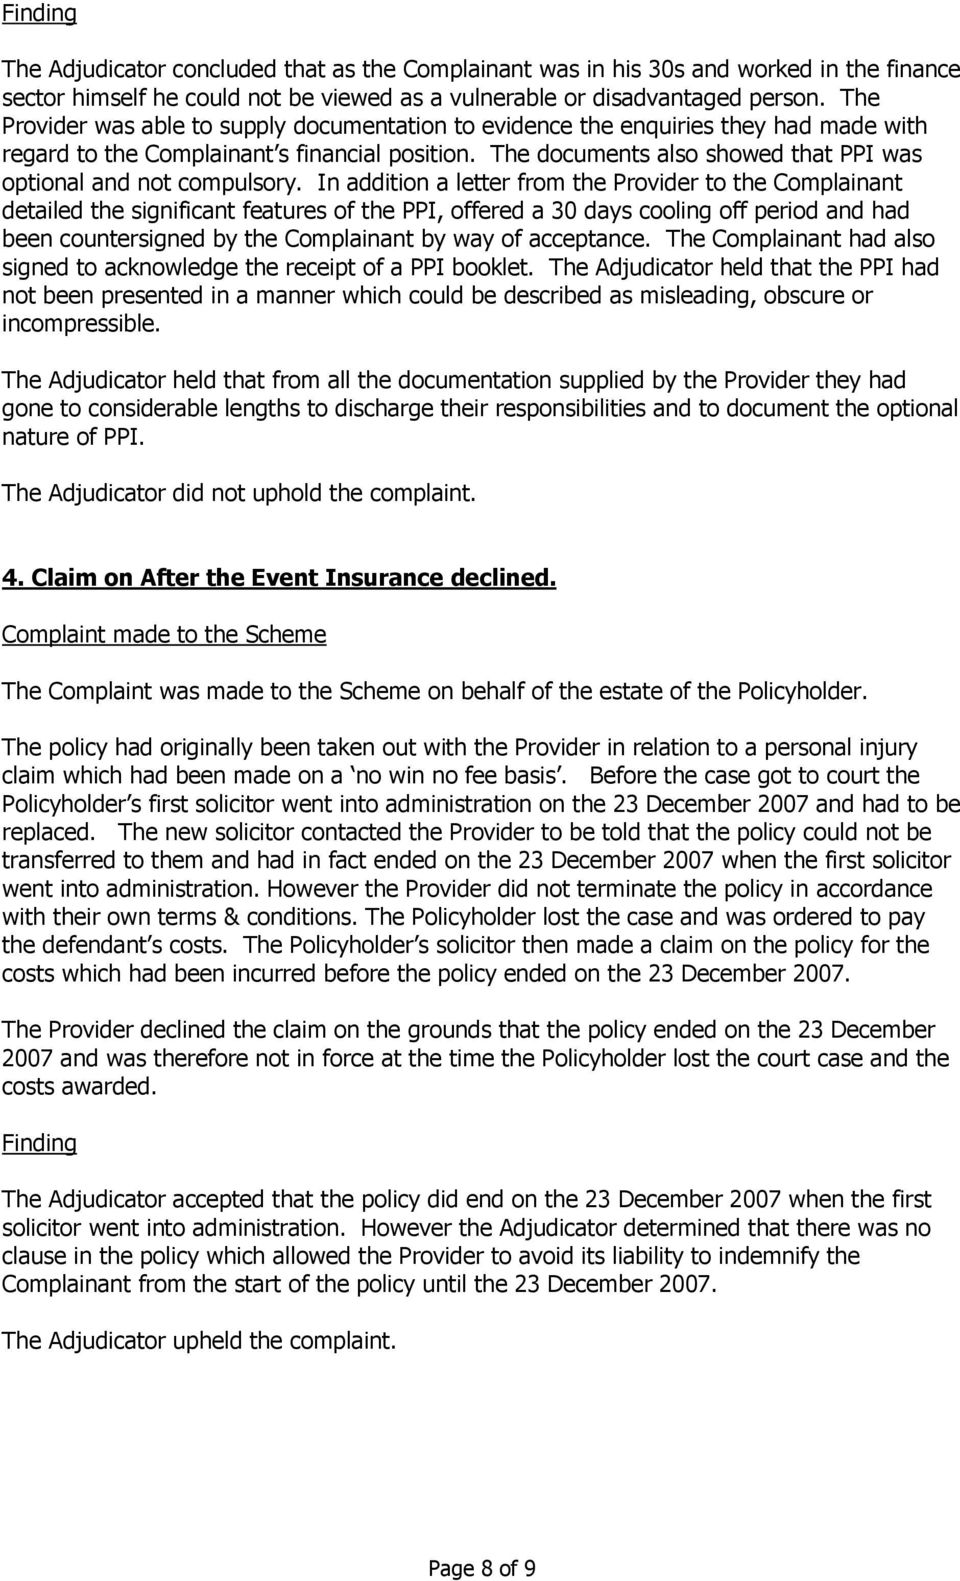 The documents also showed that PPI was optional and not compulsory.